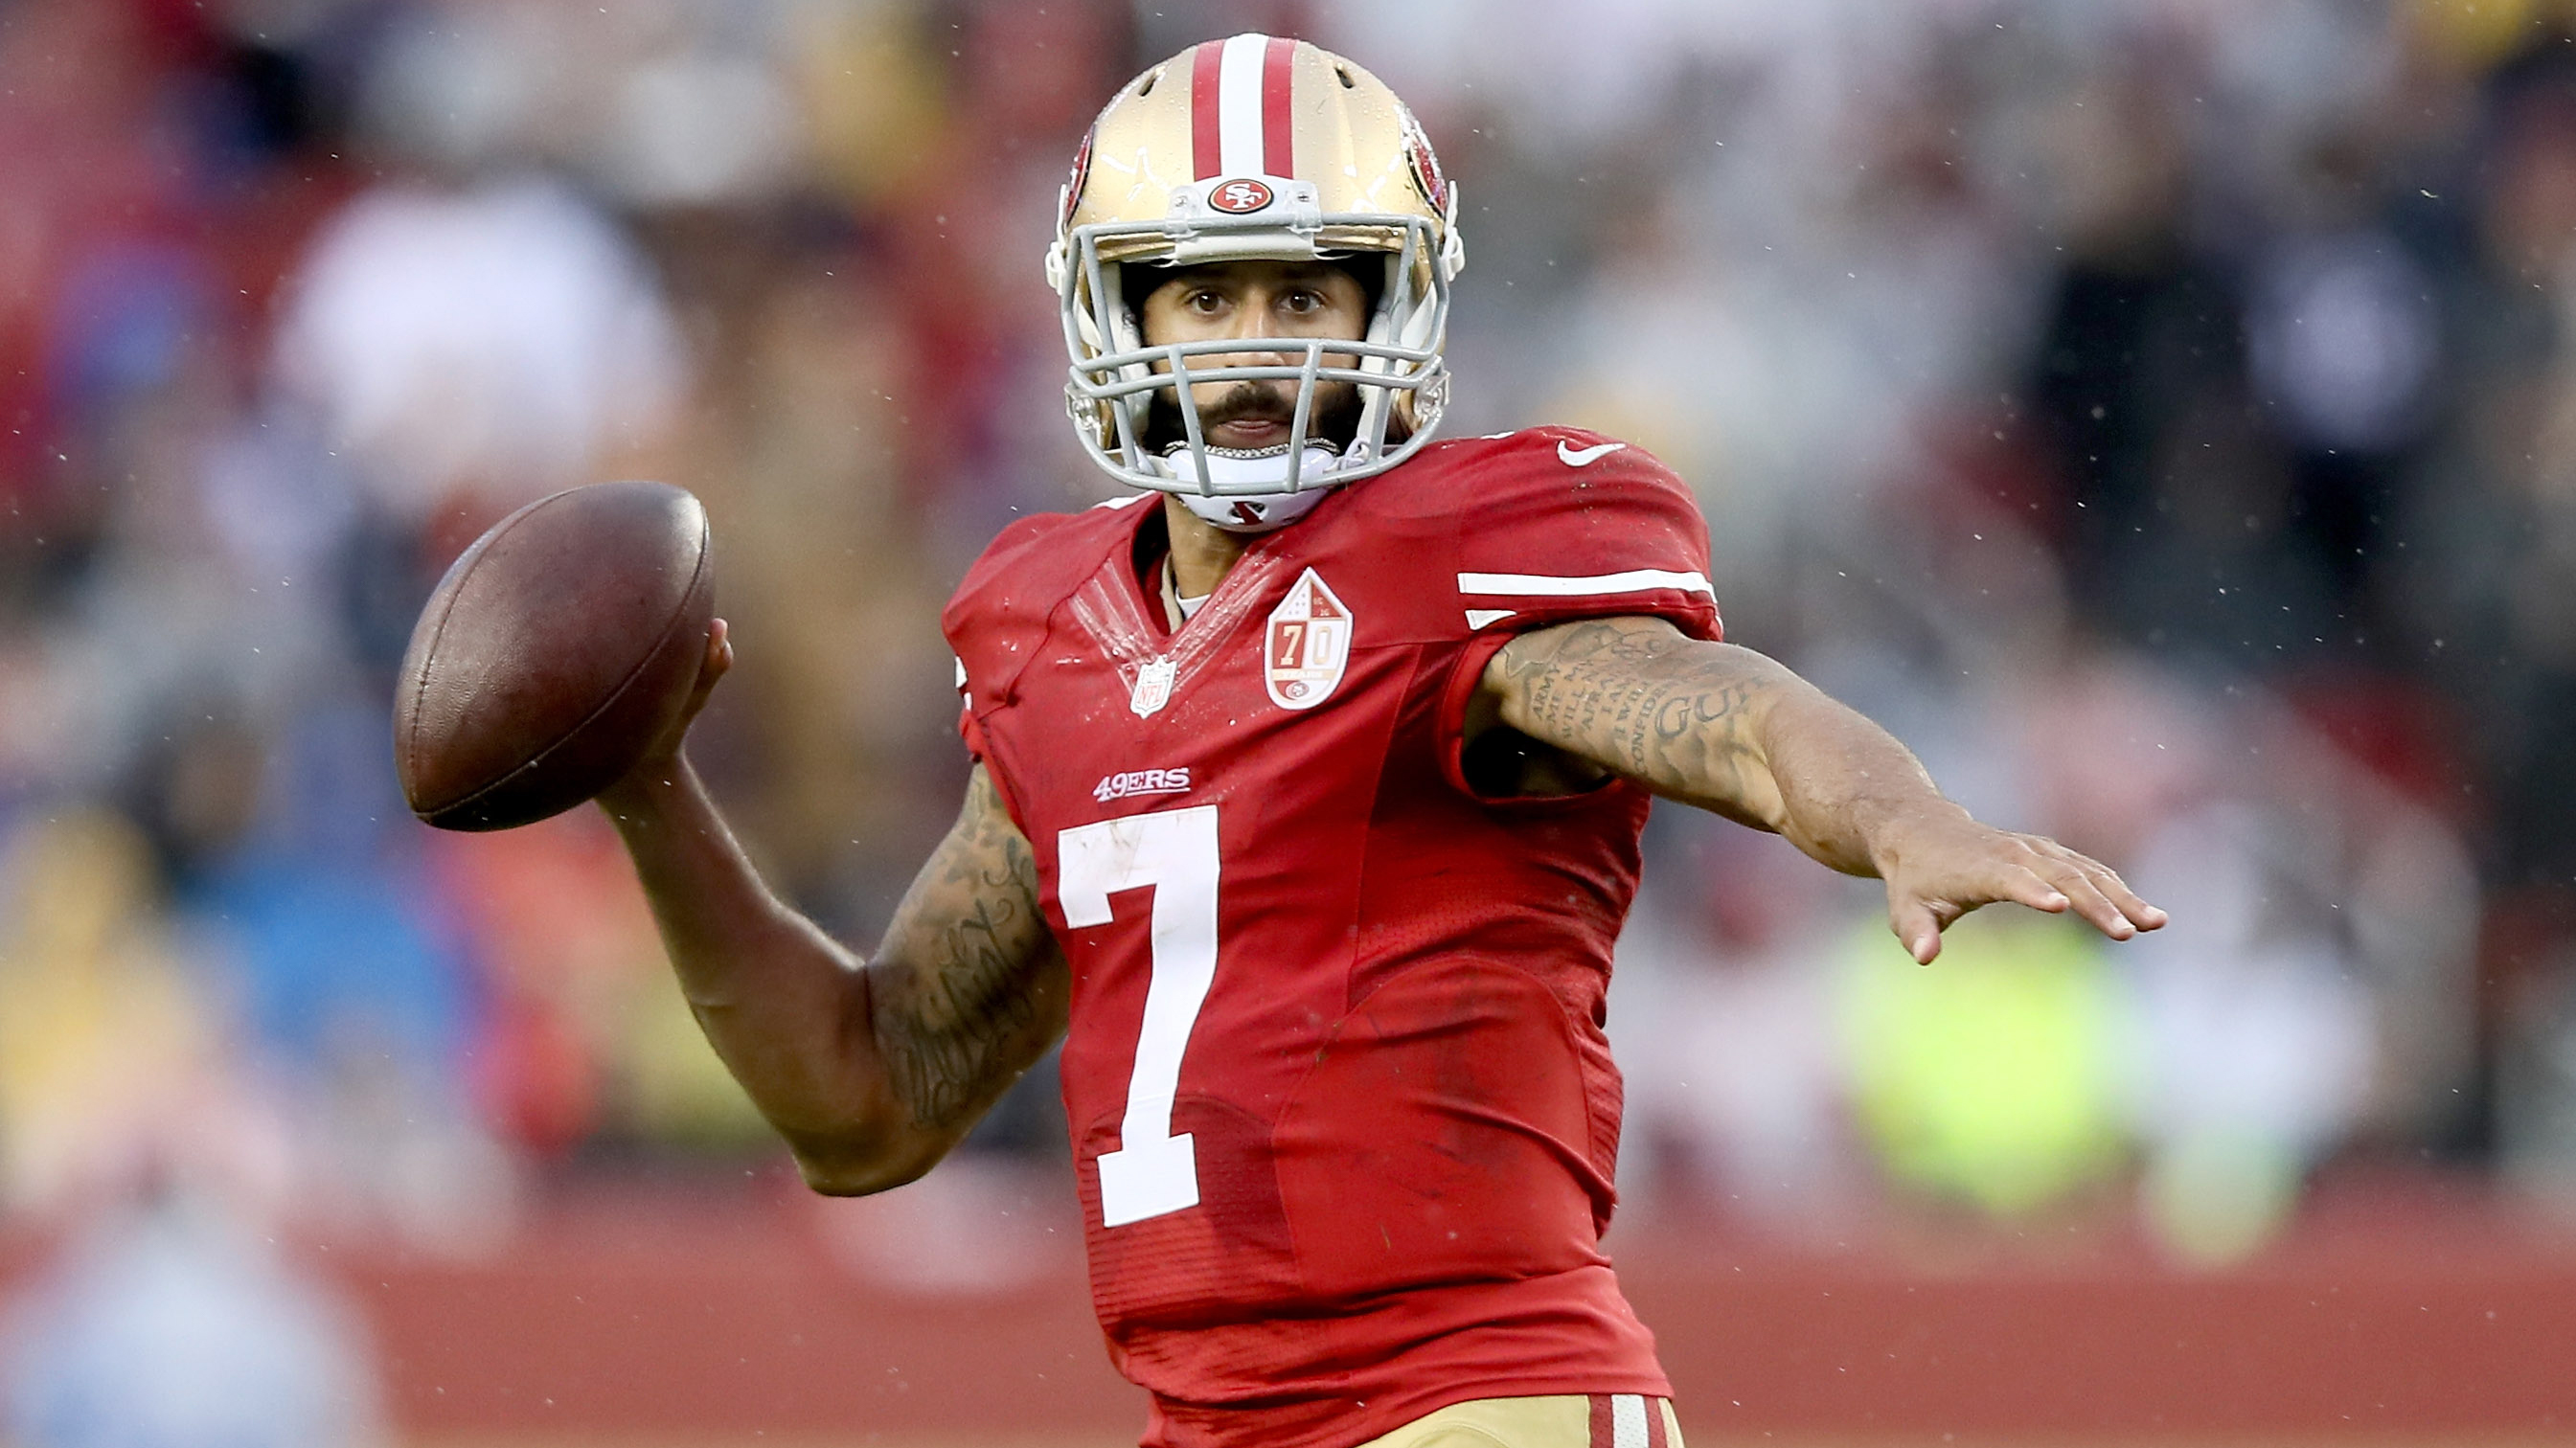 95% of surveyed players think Colin Kaepernick should be in NFL  e95a04bbb